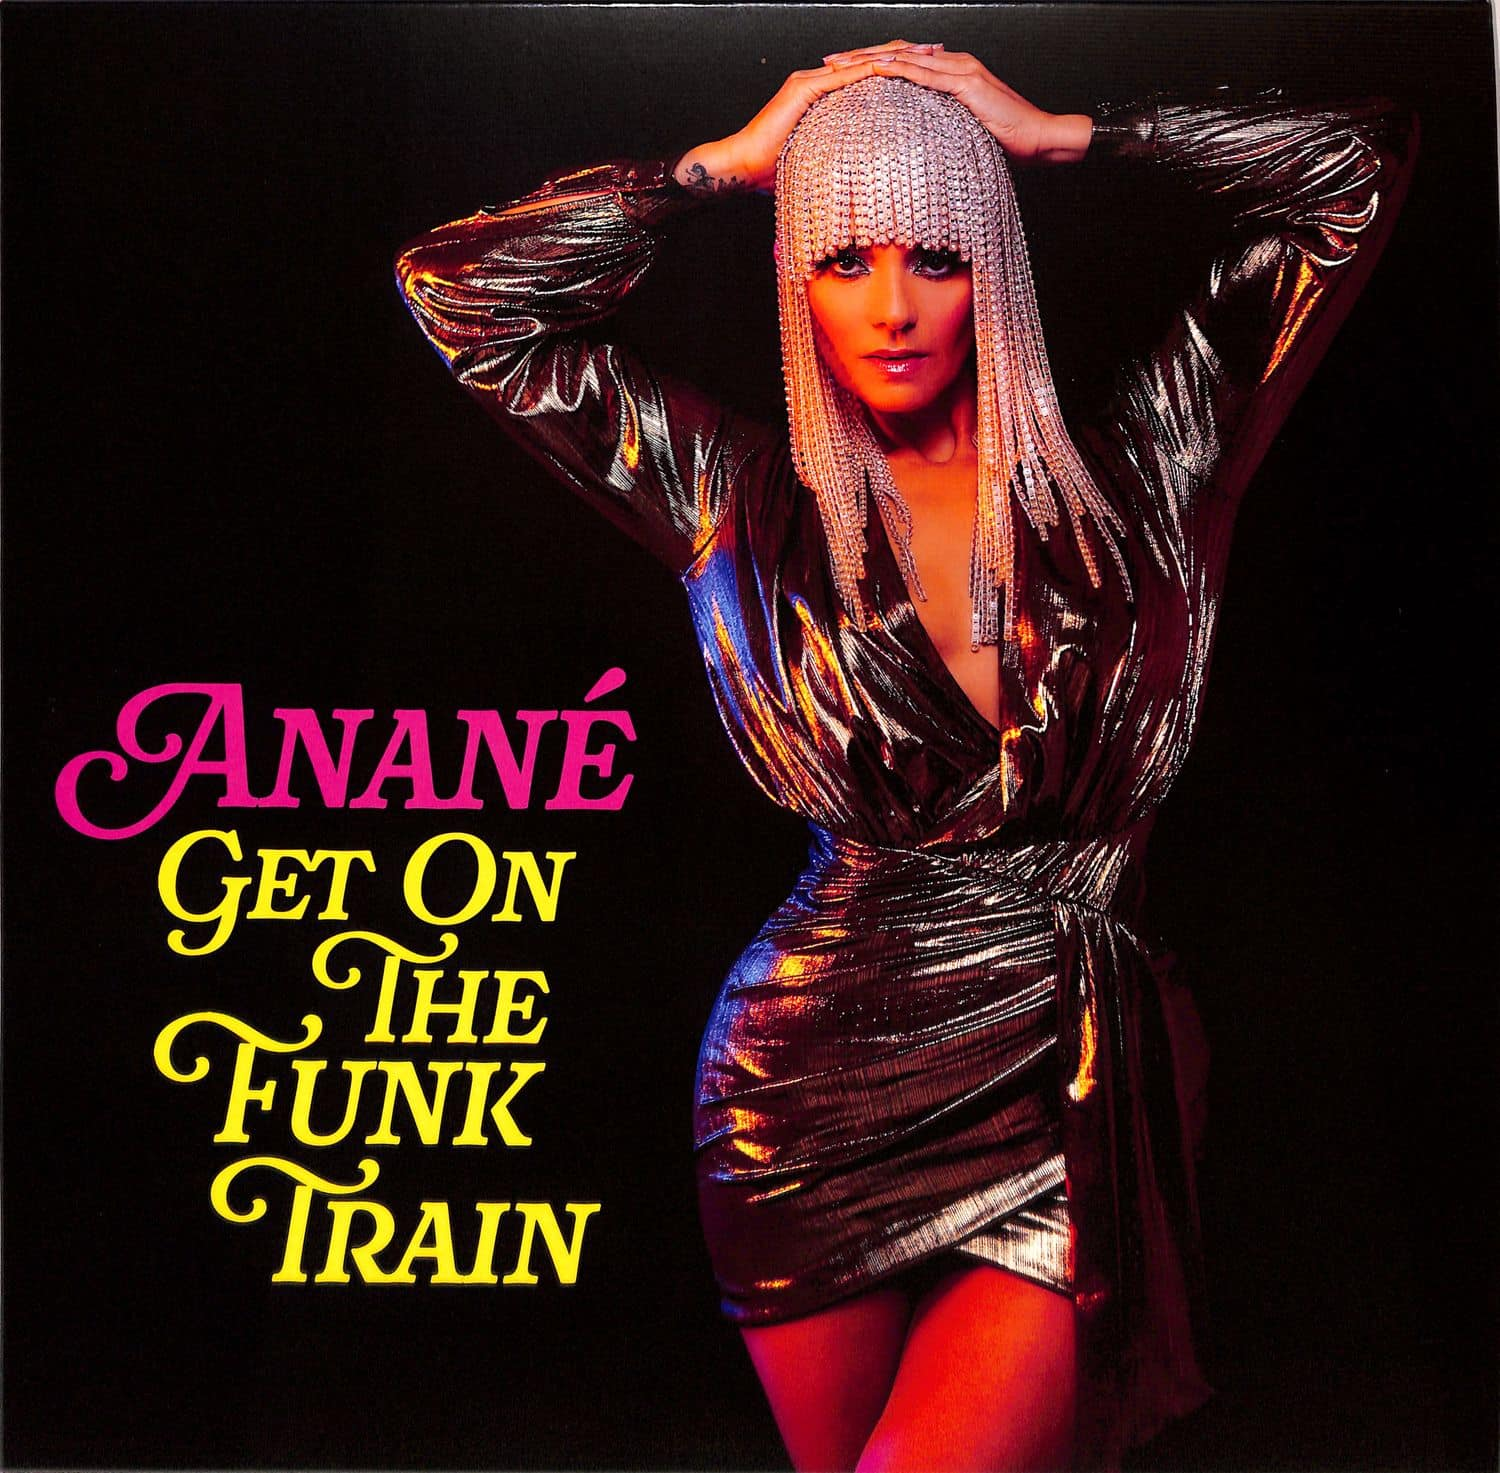 Anane - GET ON THE FUNK TRAIN